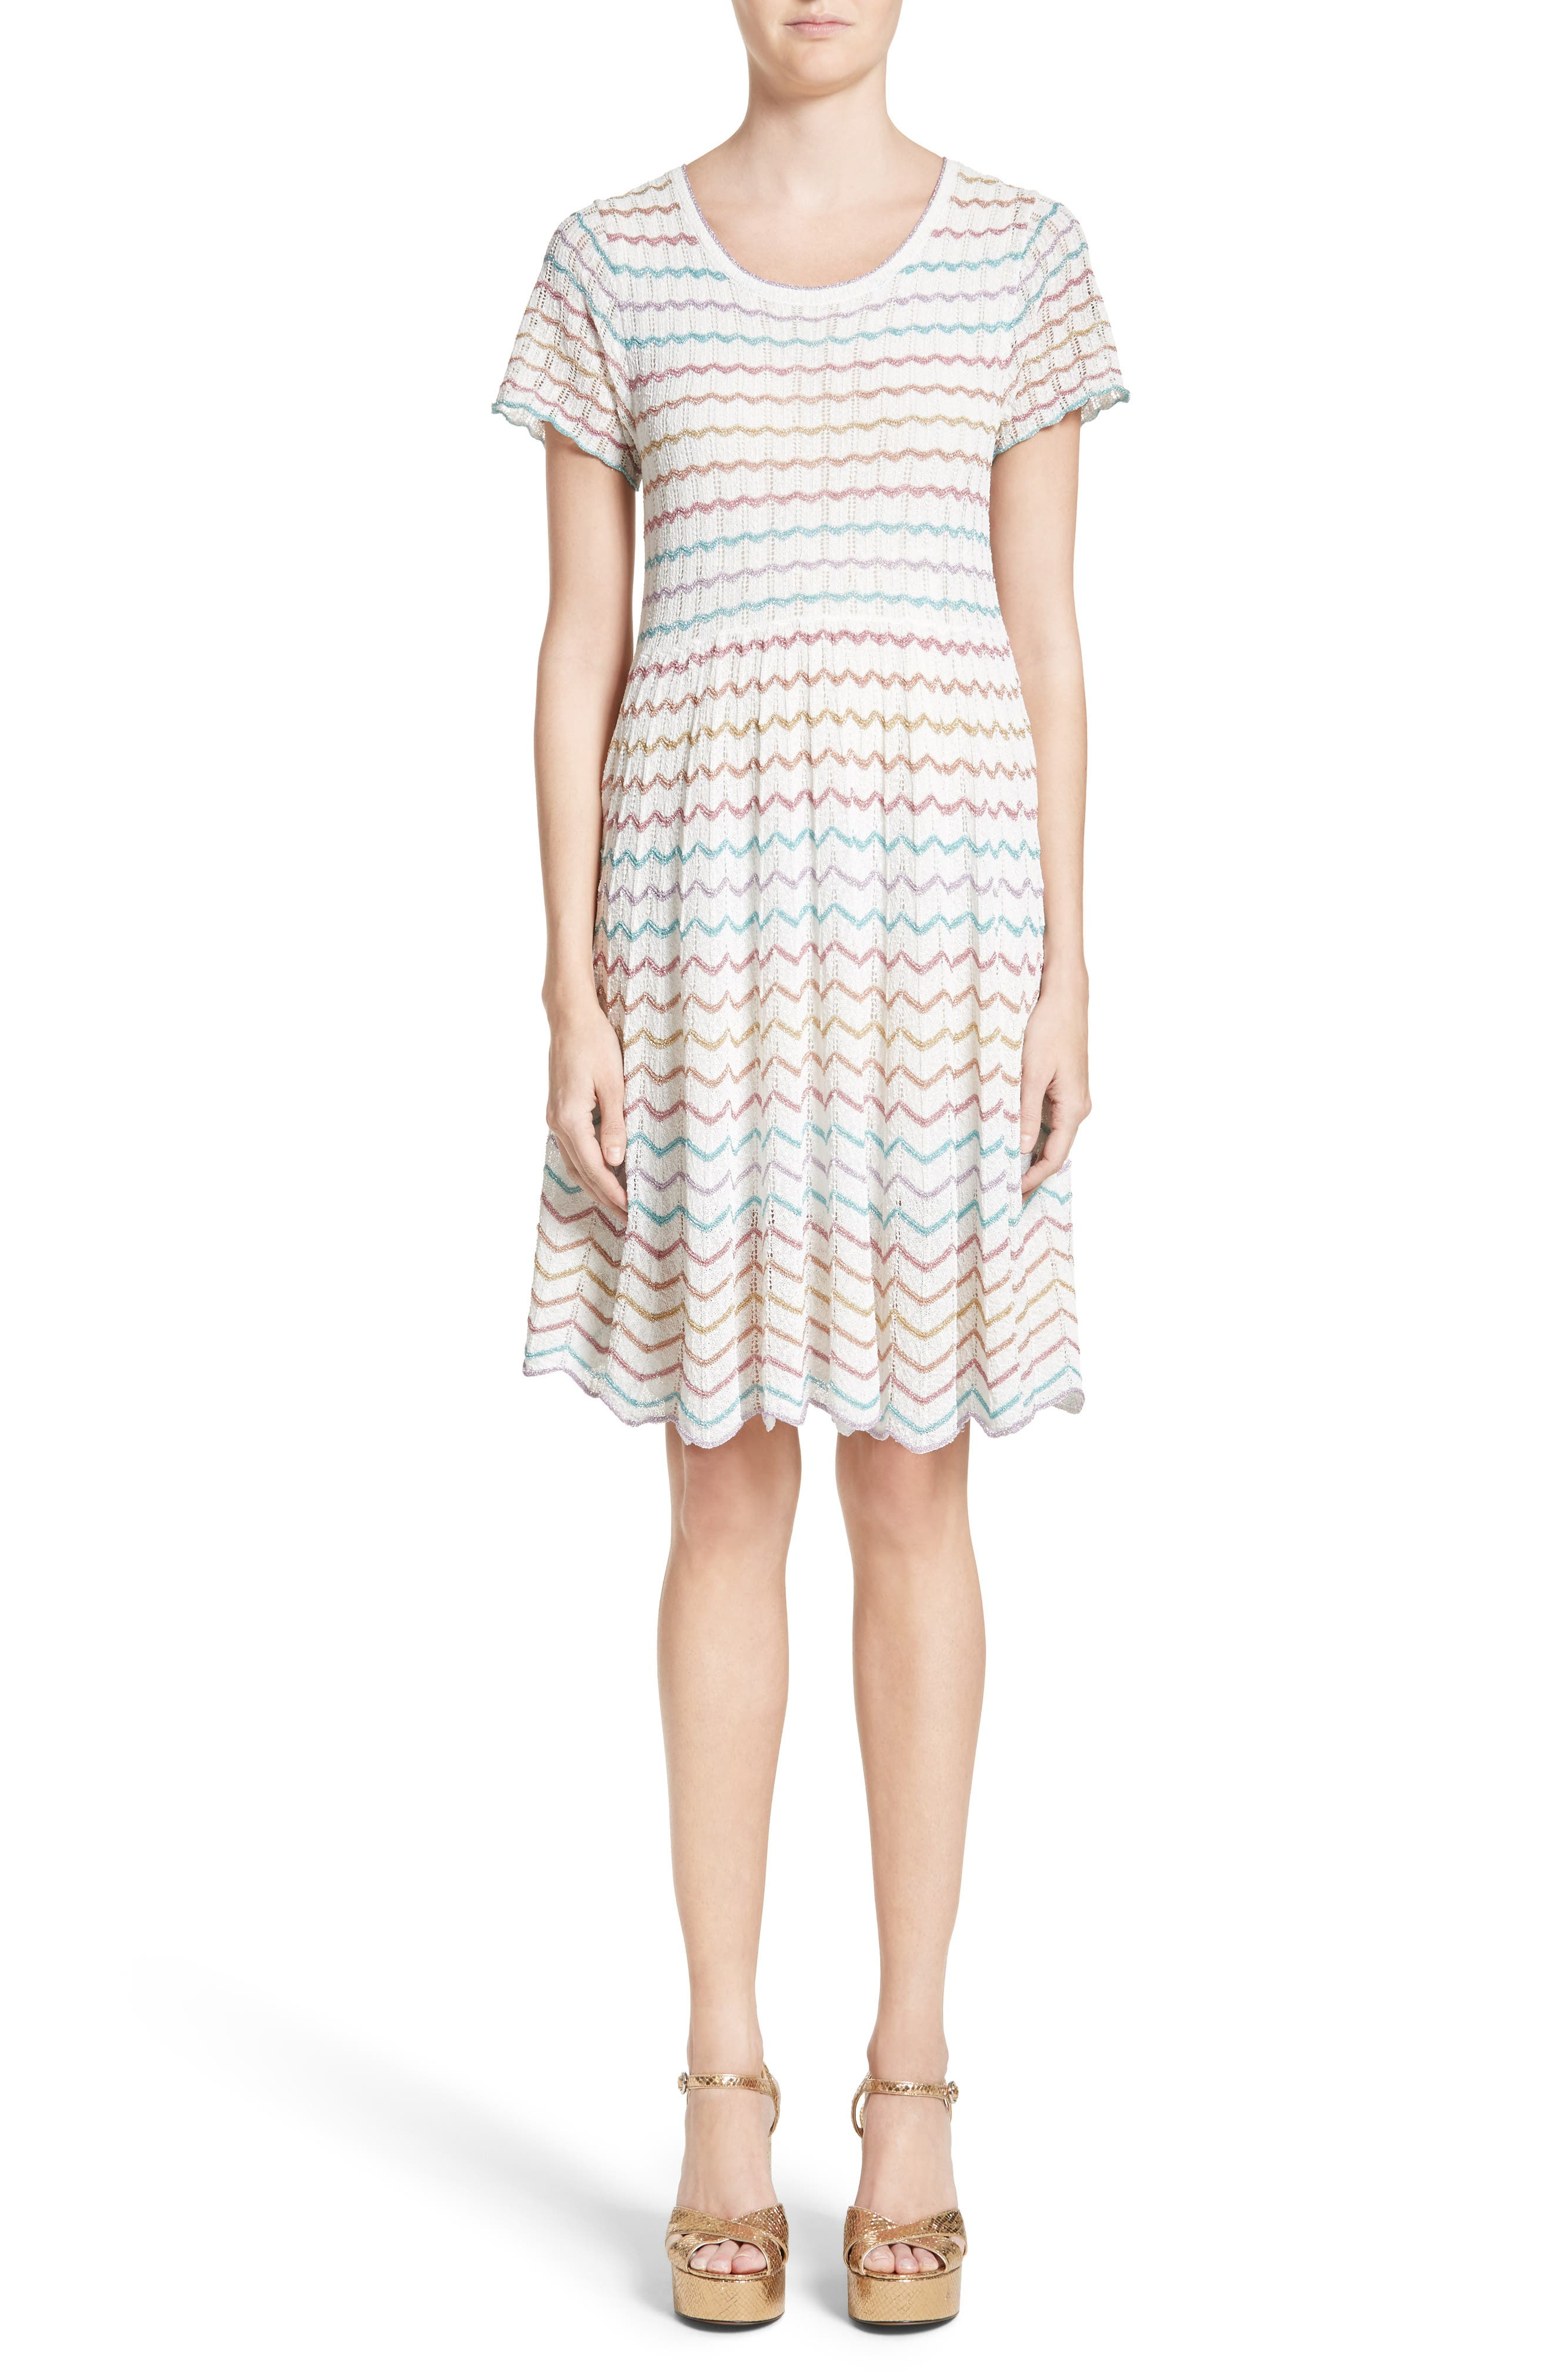 Main Image - MARC JACOBS Knit Babydoll Dress